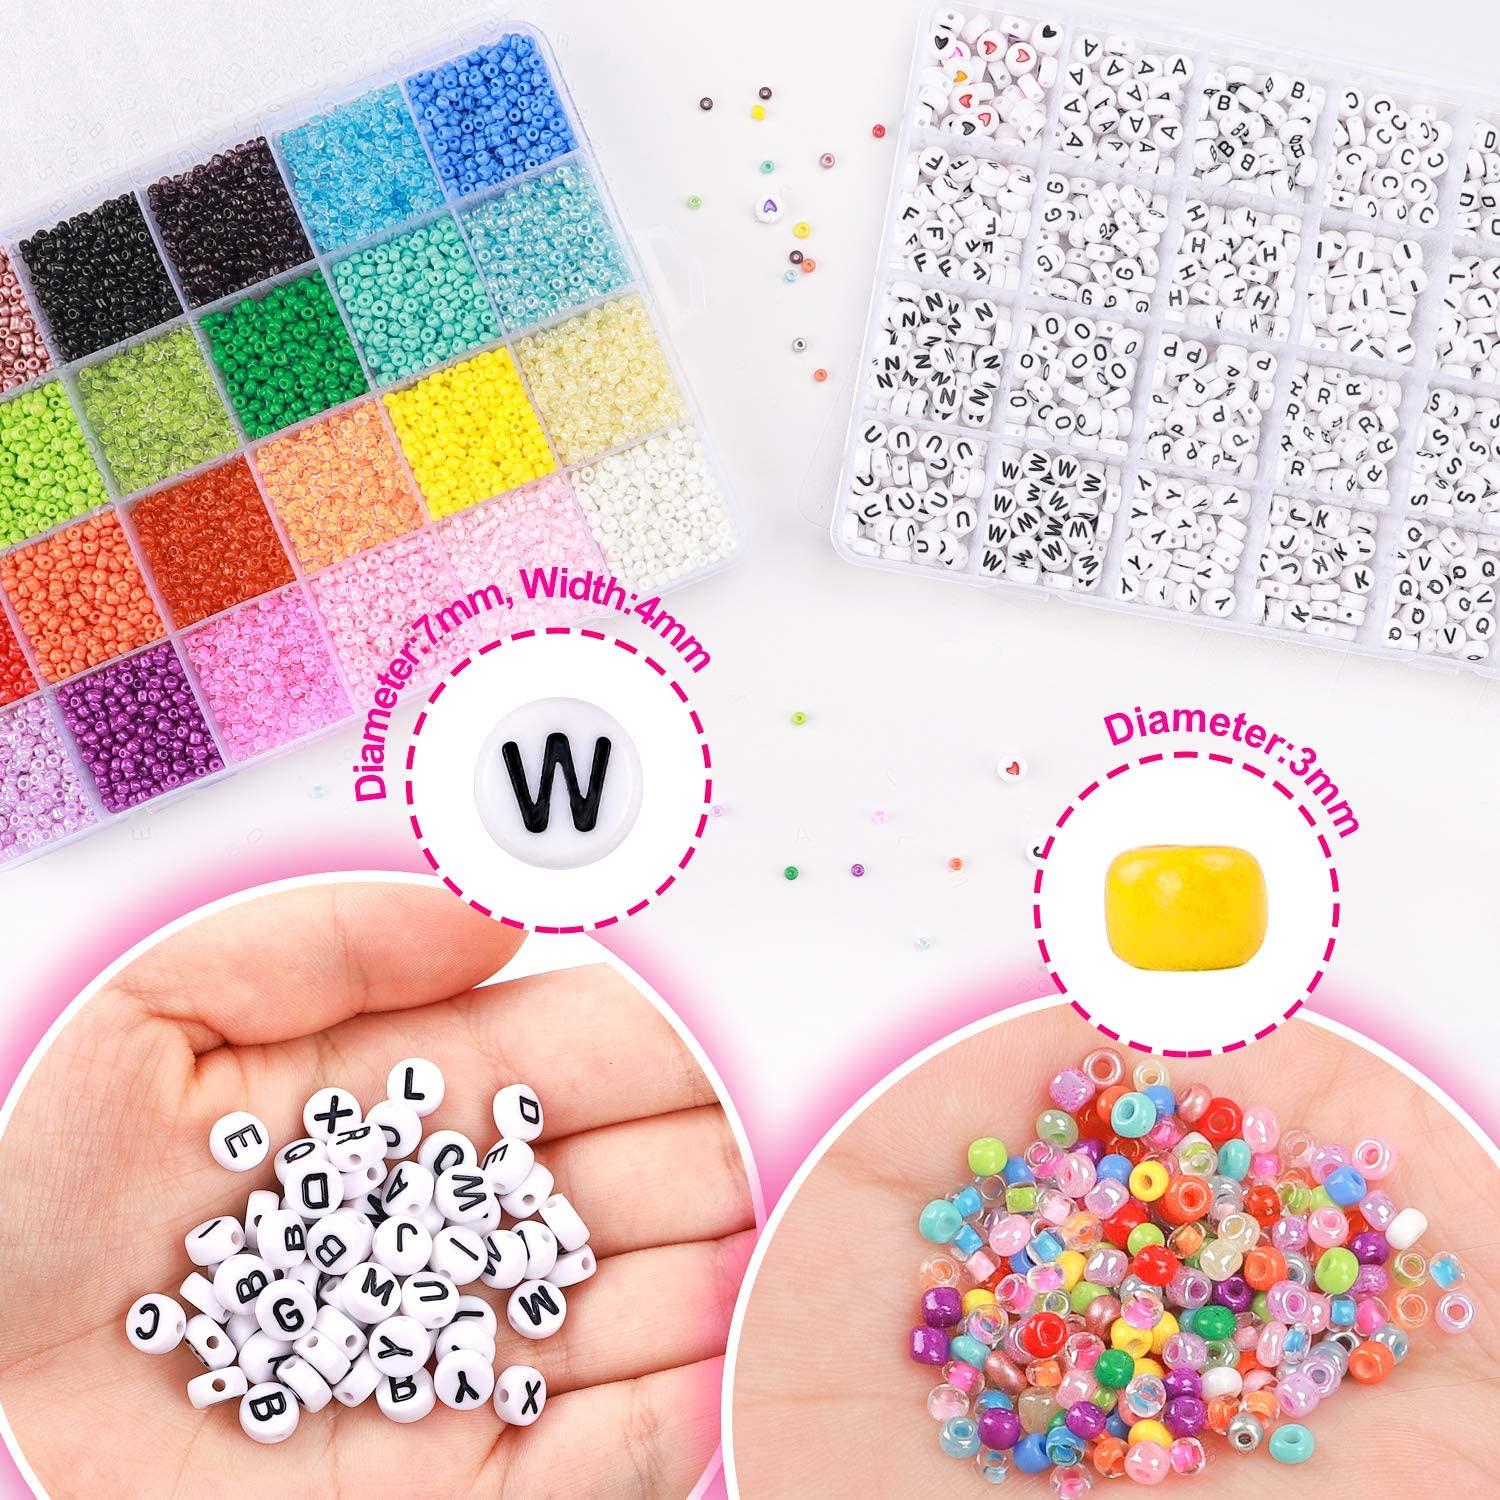 DICOBD Beads Kit 15600pcs 3mm Glass Seed Beads and 1200pcs Letter Beads with 2 Rolls of Cord for Bracelets Necklaces and Key Chains Making